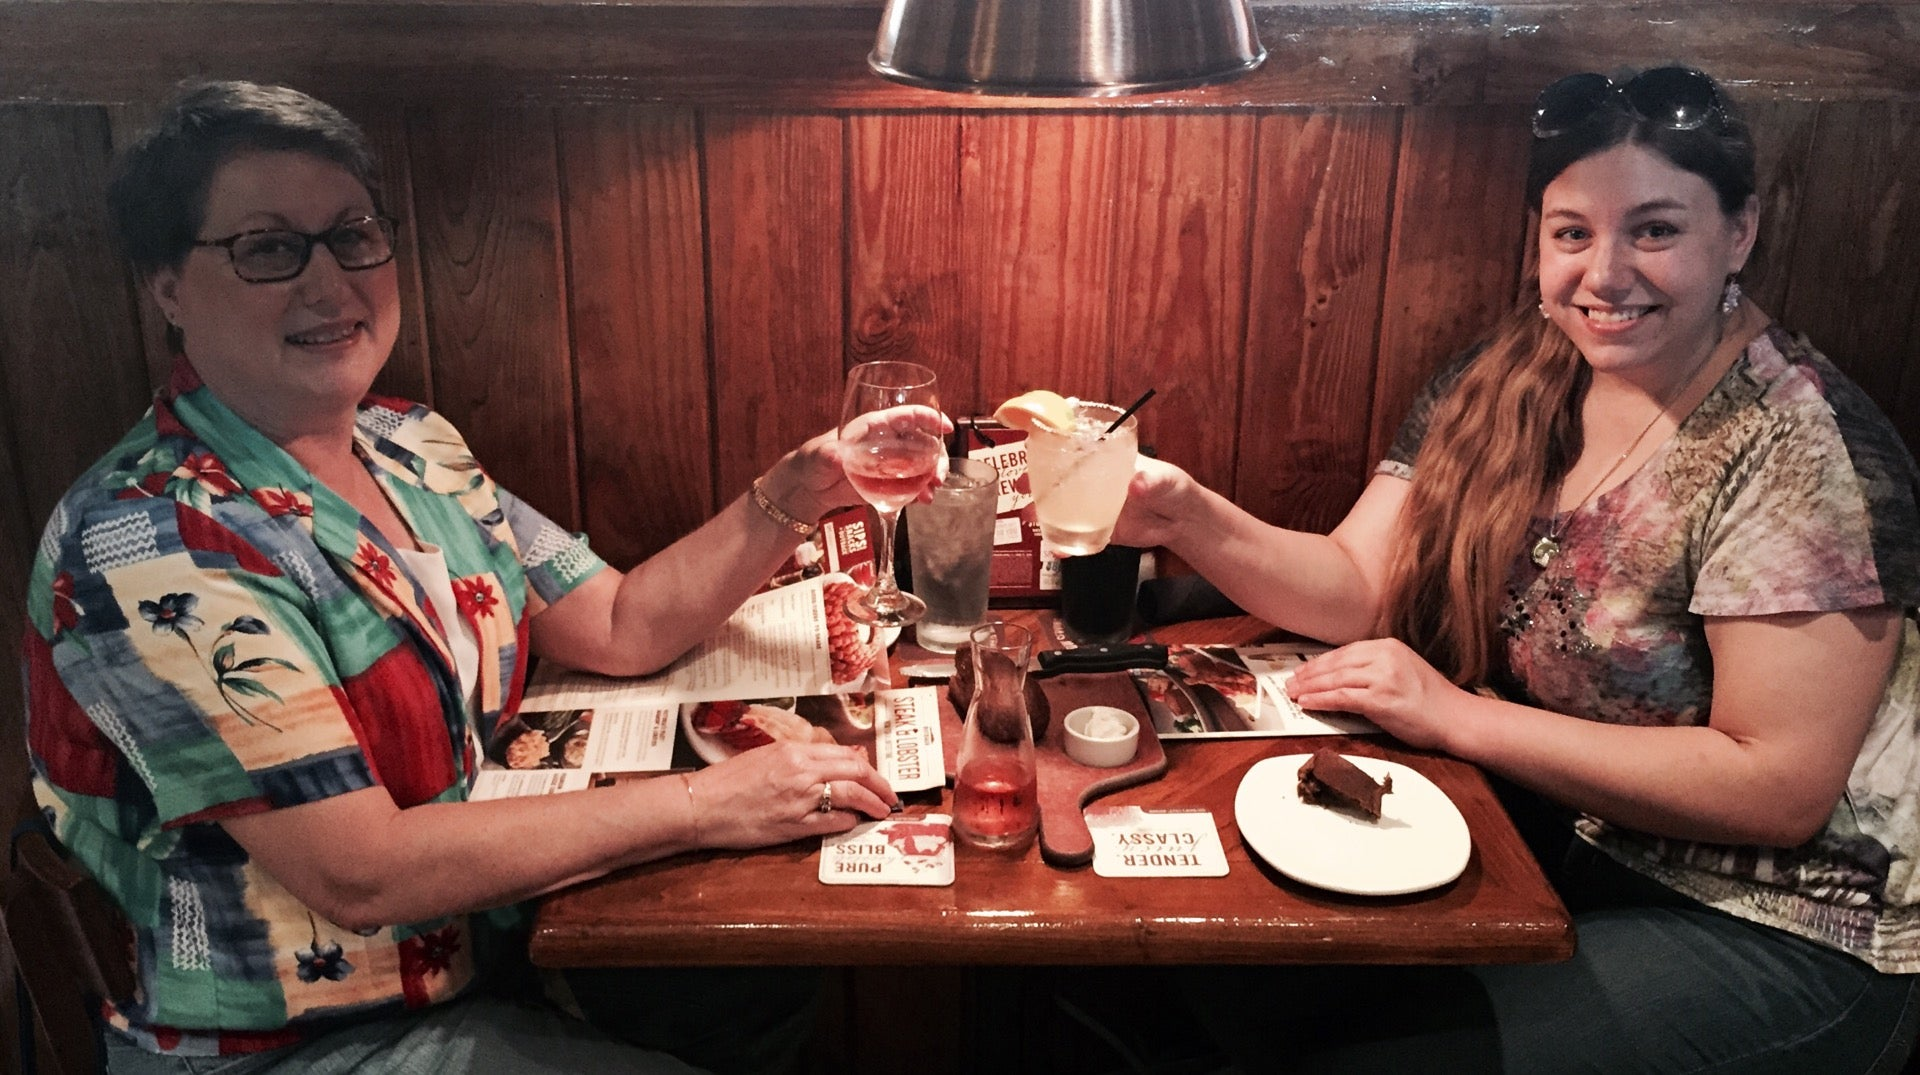 OUTBACK STEAKHOUSE,Bloomin' Onion,Outback,Restaurant,Steakhouse